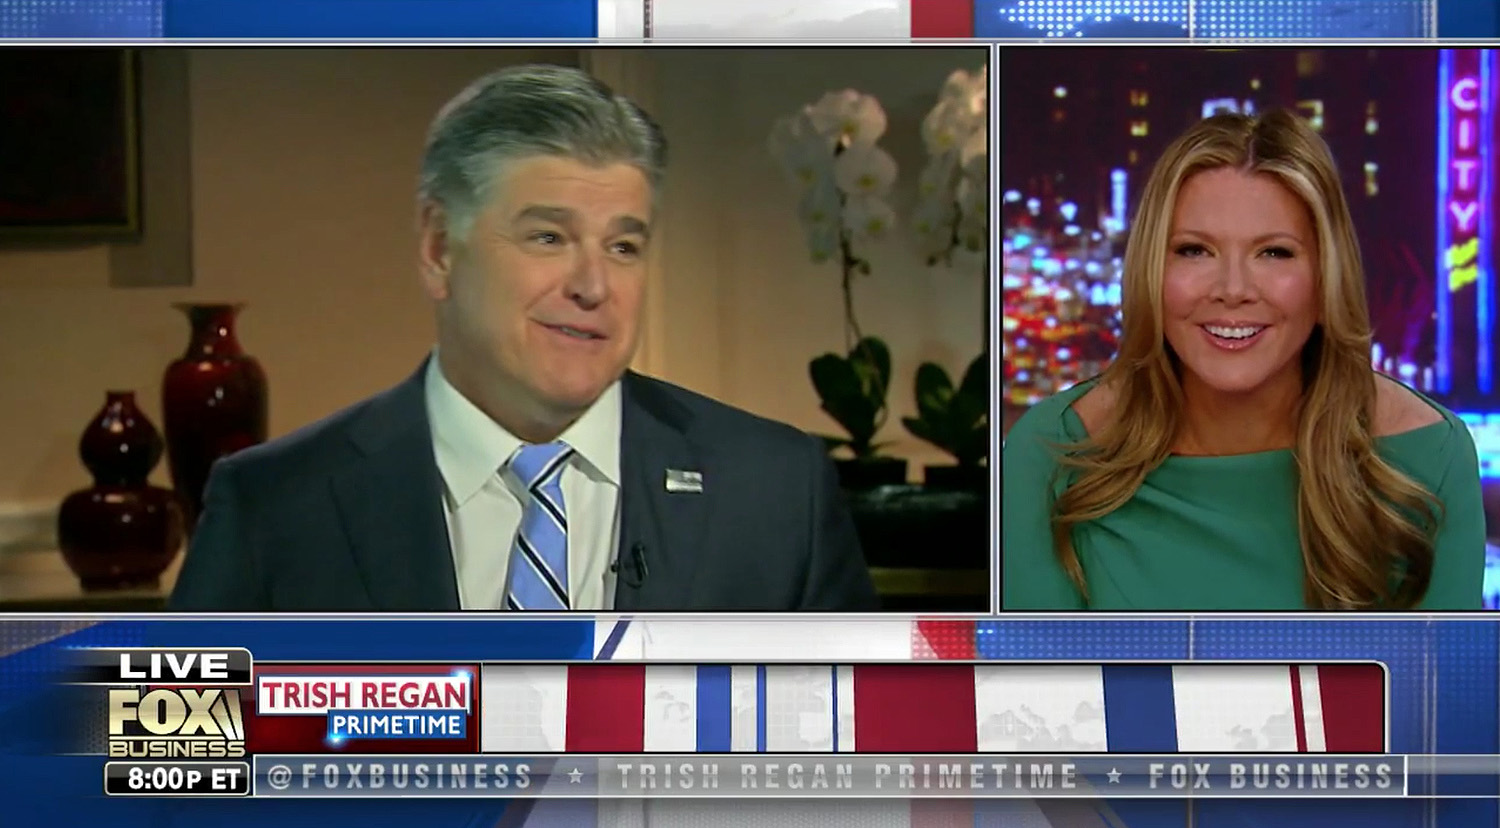 NCS_Fox-Business_Trish-Regan-Primetime-0008